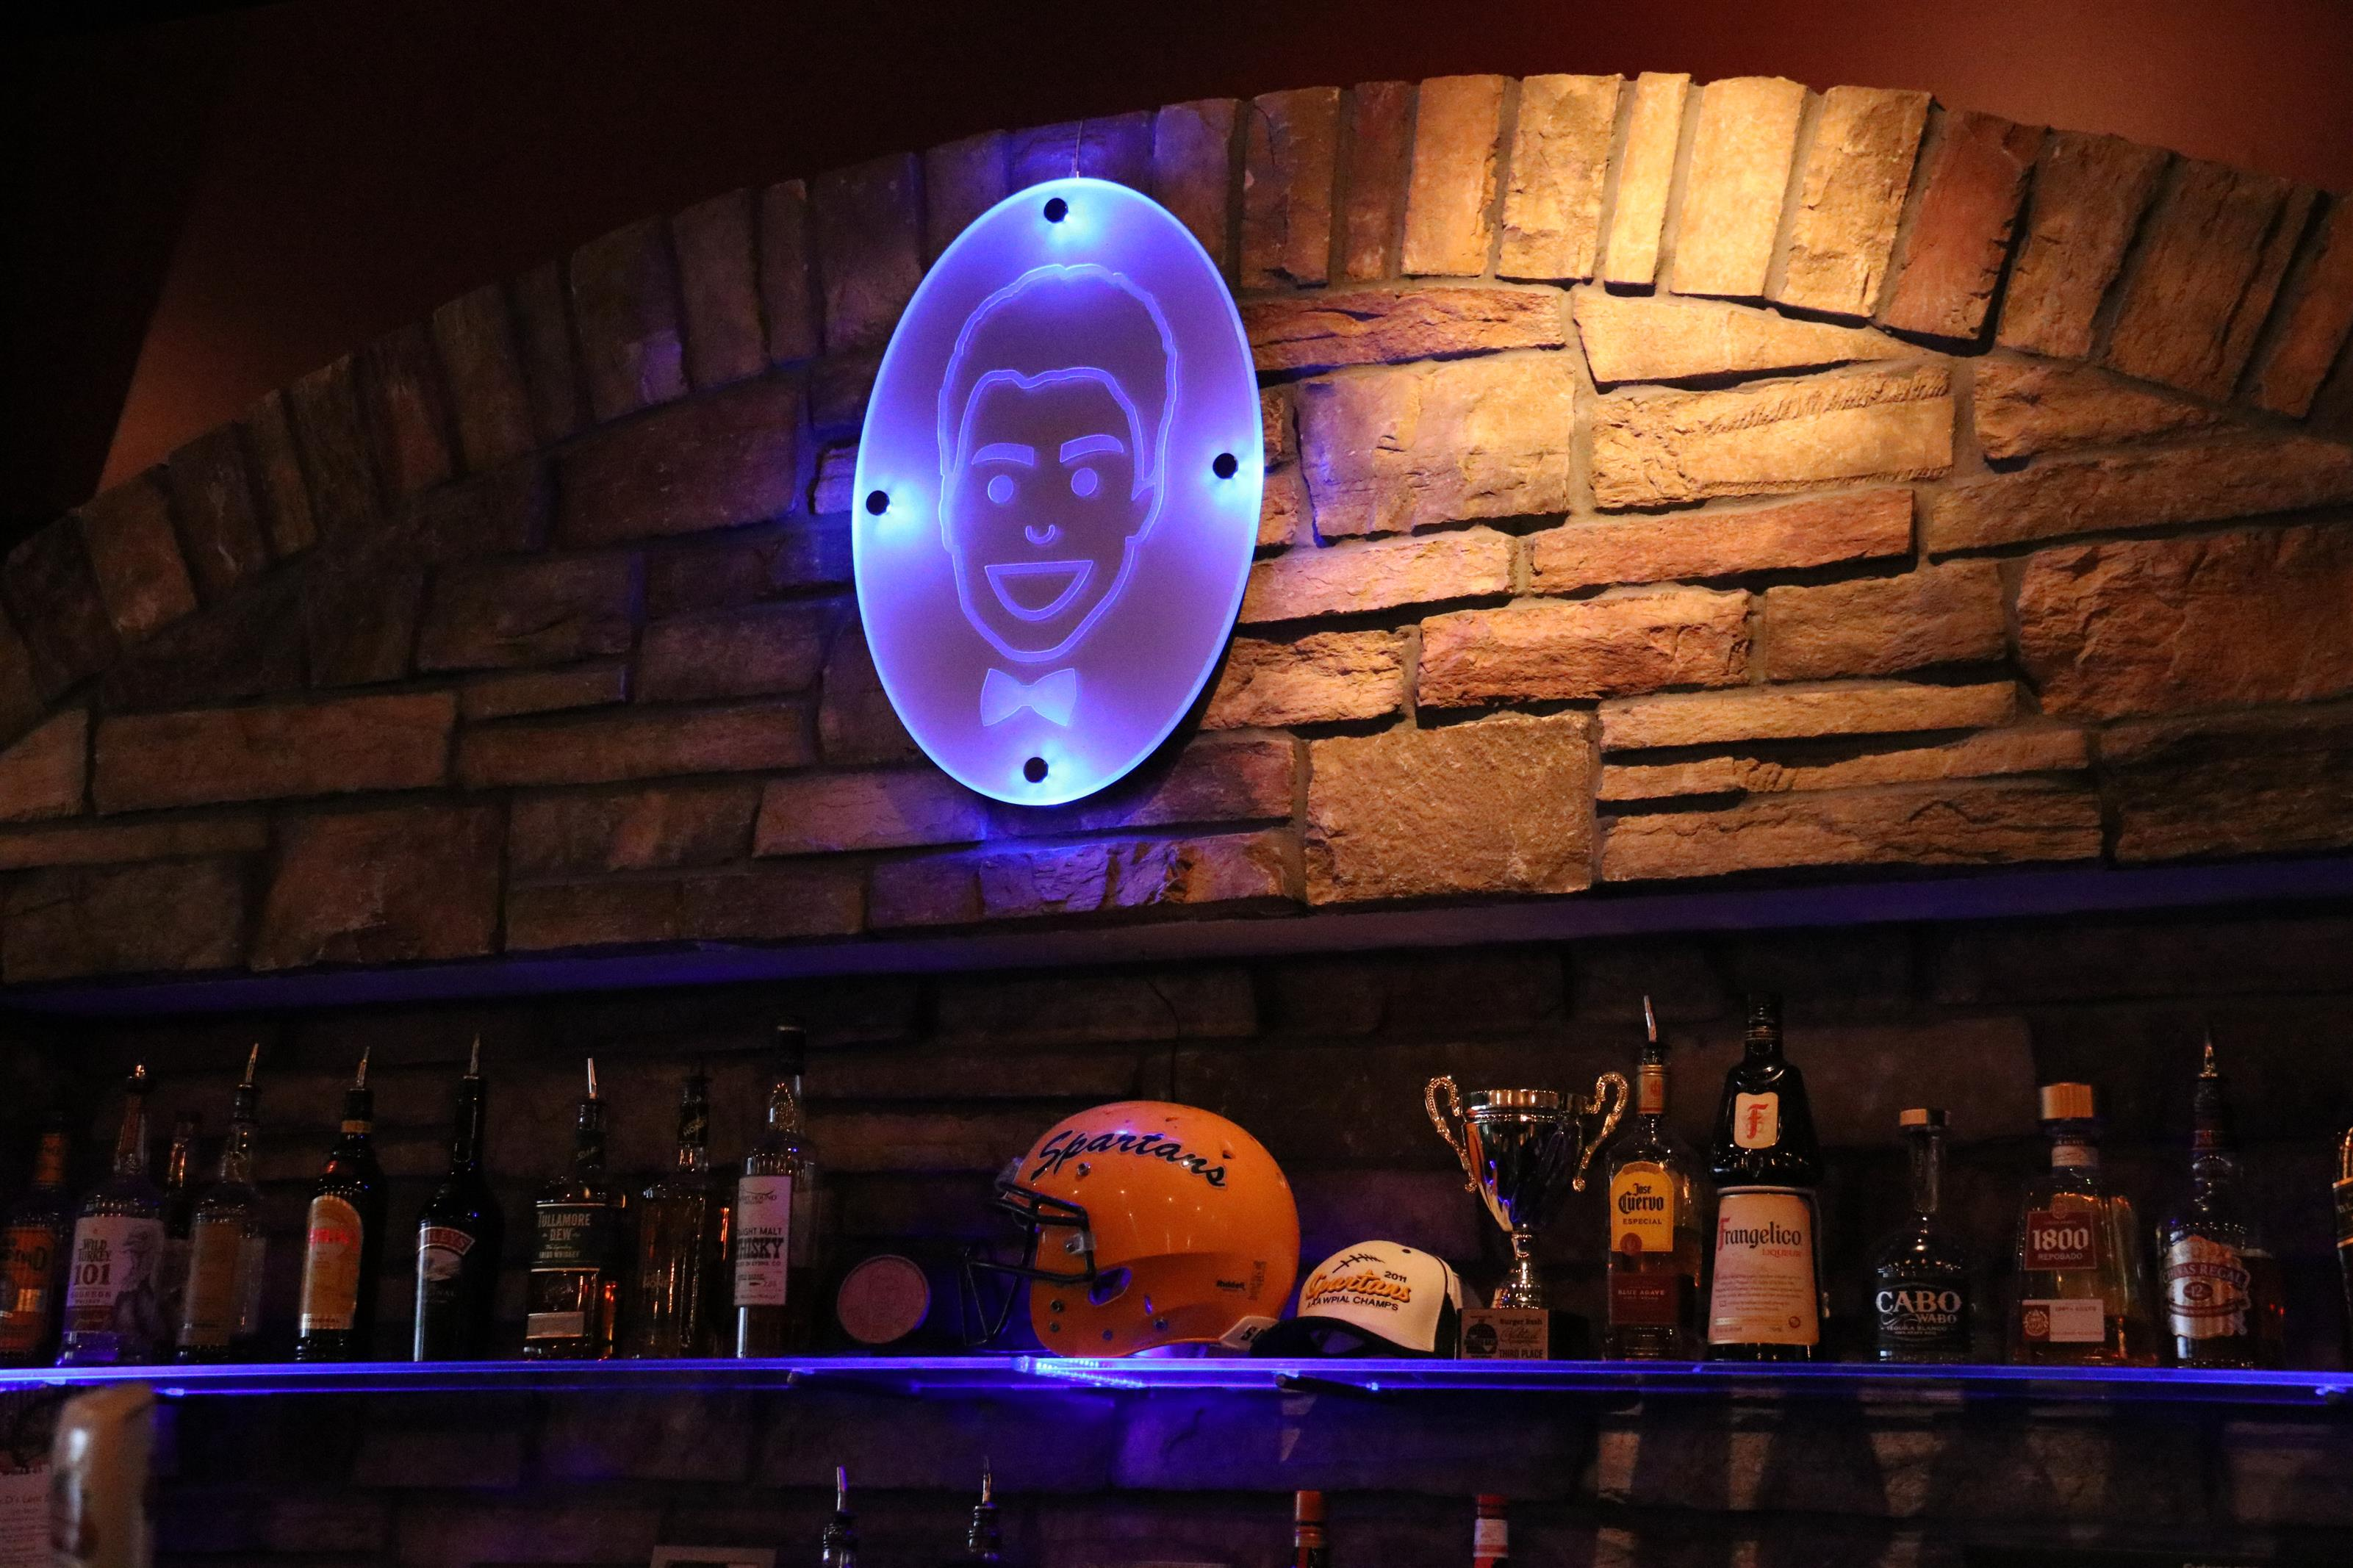 bar area with logo of bobby d's